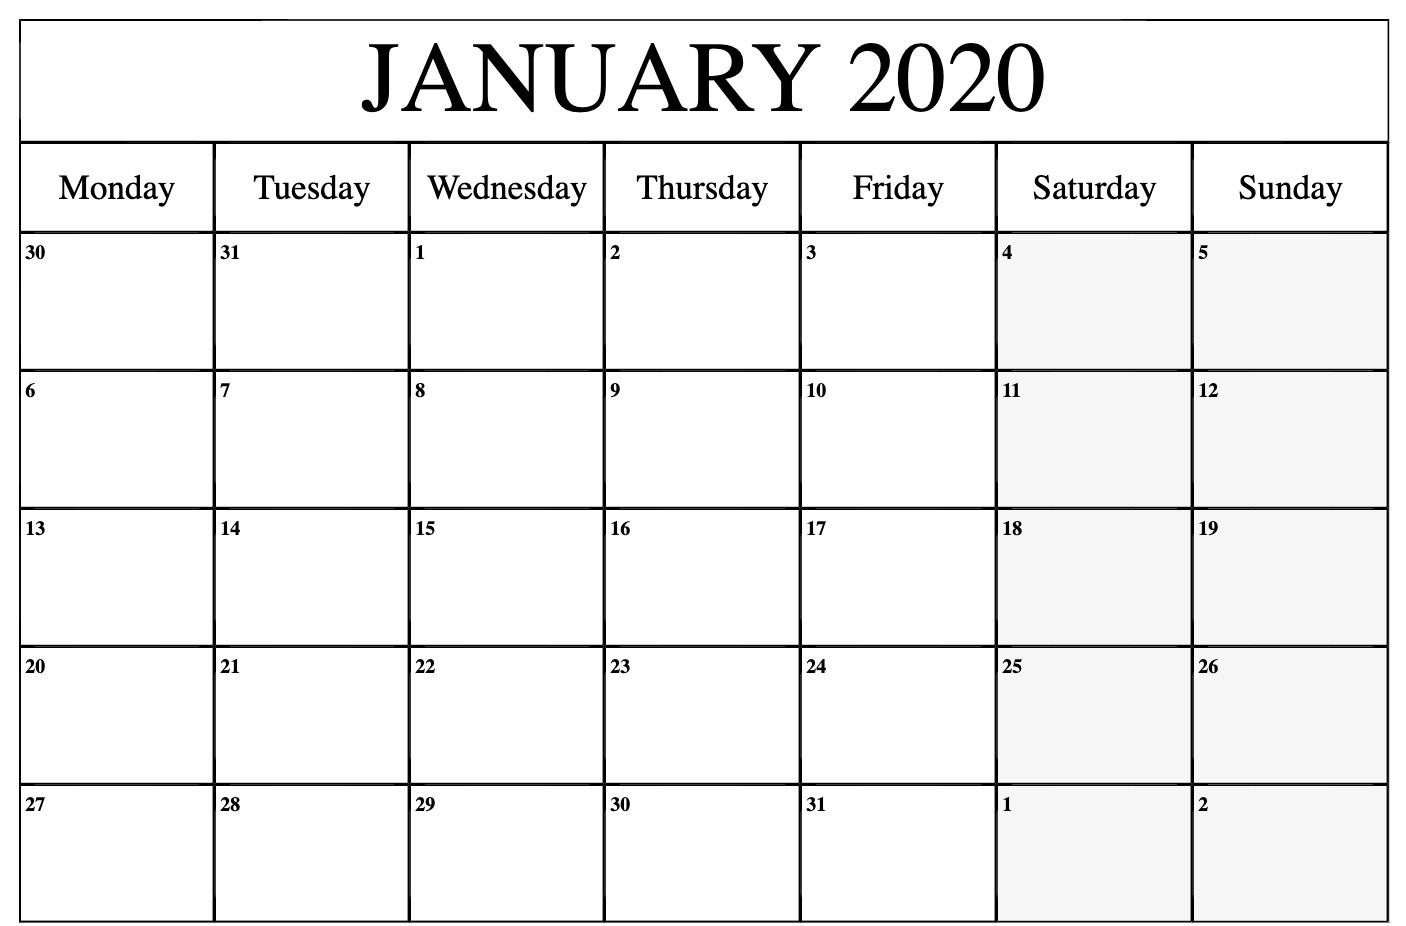 Free January Calendar 2020 Printable Template Blank In Pdf pertaining to 2020 December Calendar 8 X11 Printable